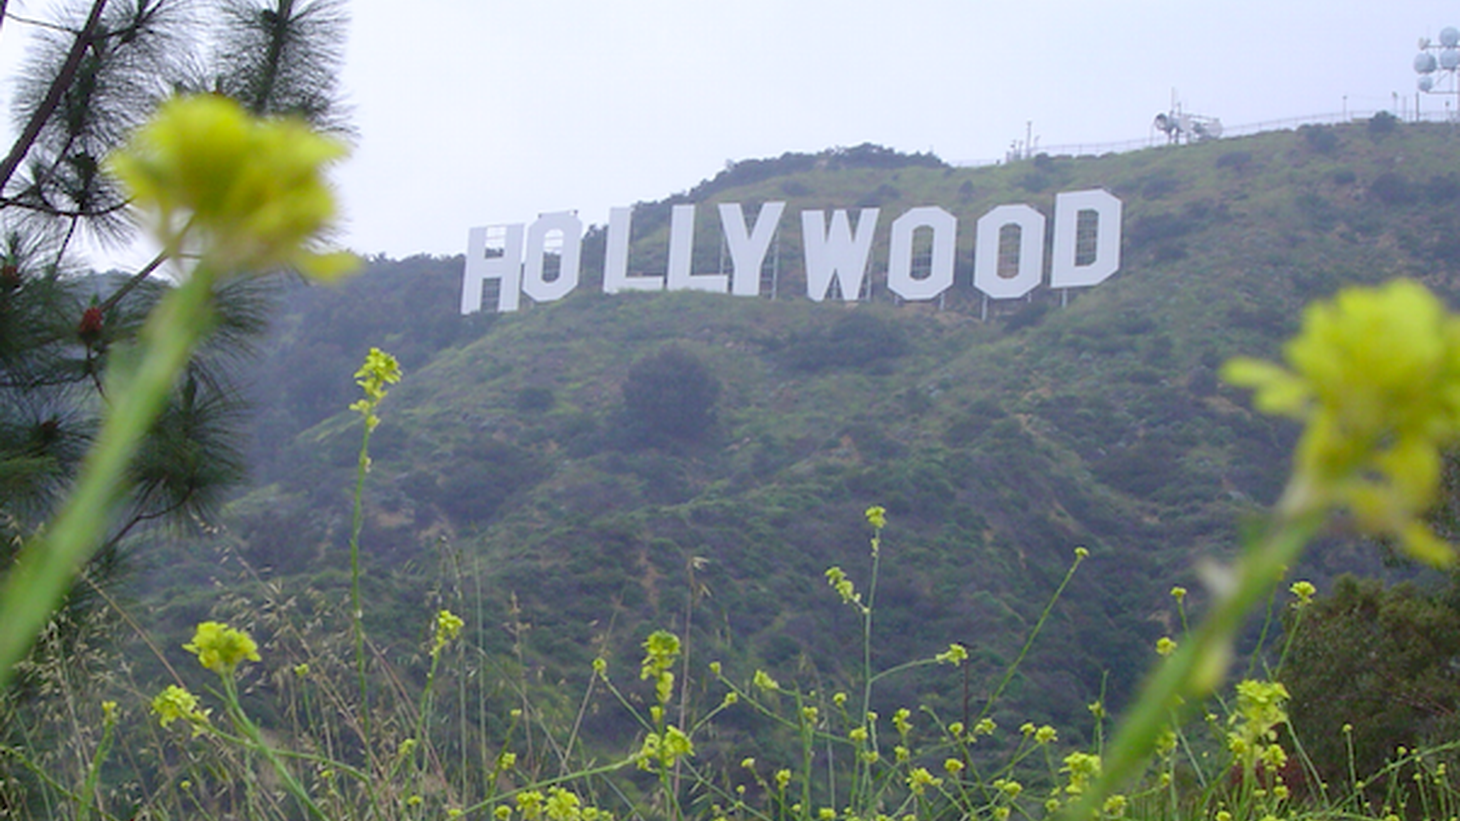 Warner Bros. wants to build an aerial tram to the Hollywood sign, which would cost $100 million. The ride would start from a parking structure by the studio in Burbank. The plan has us wondering about other ways to ease traffic congestion.